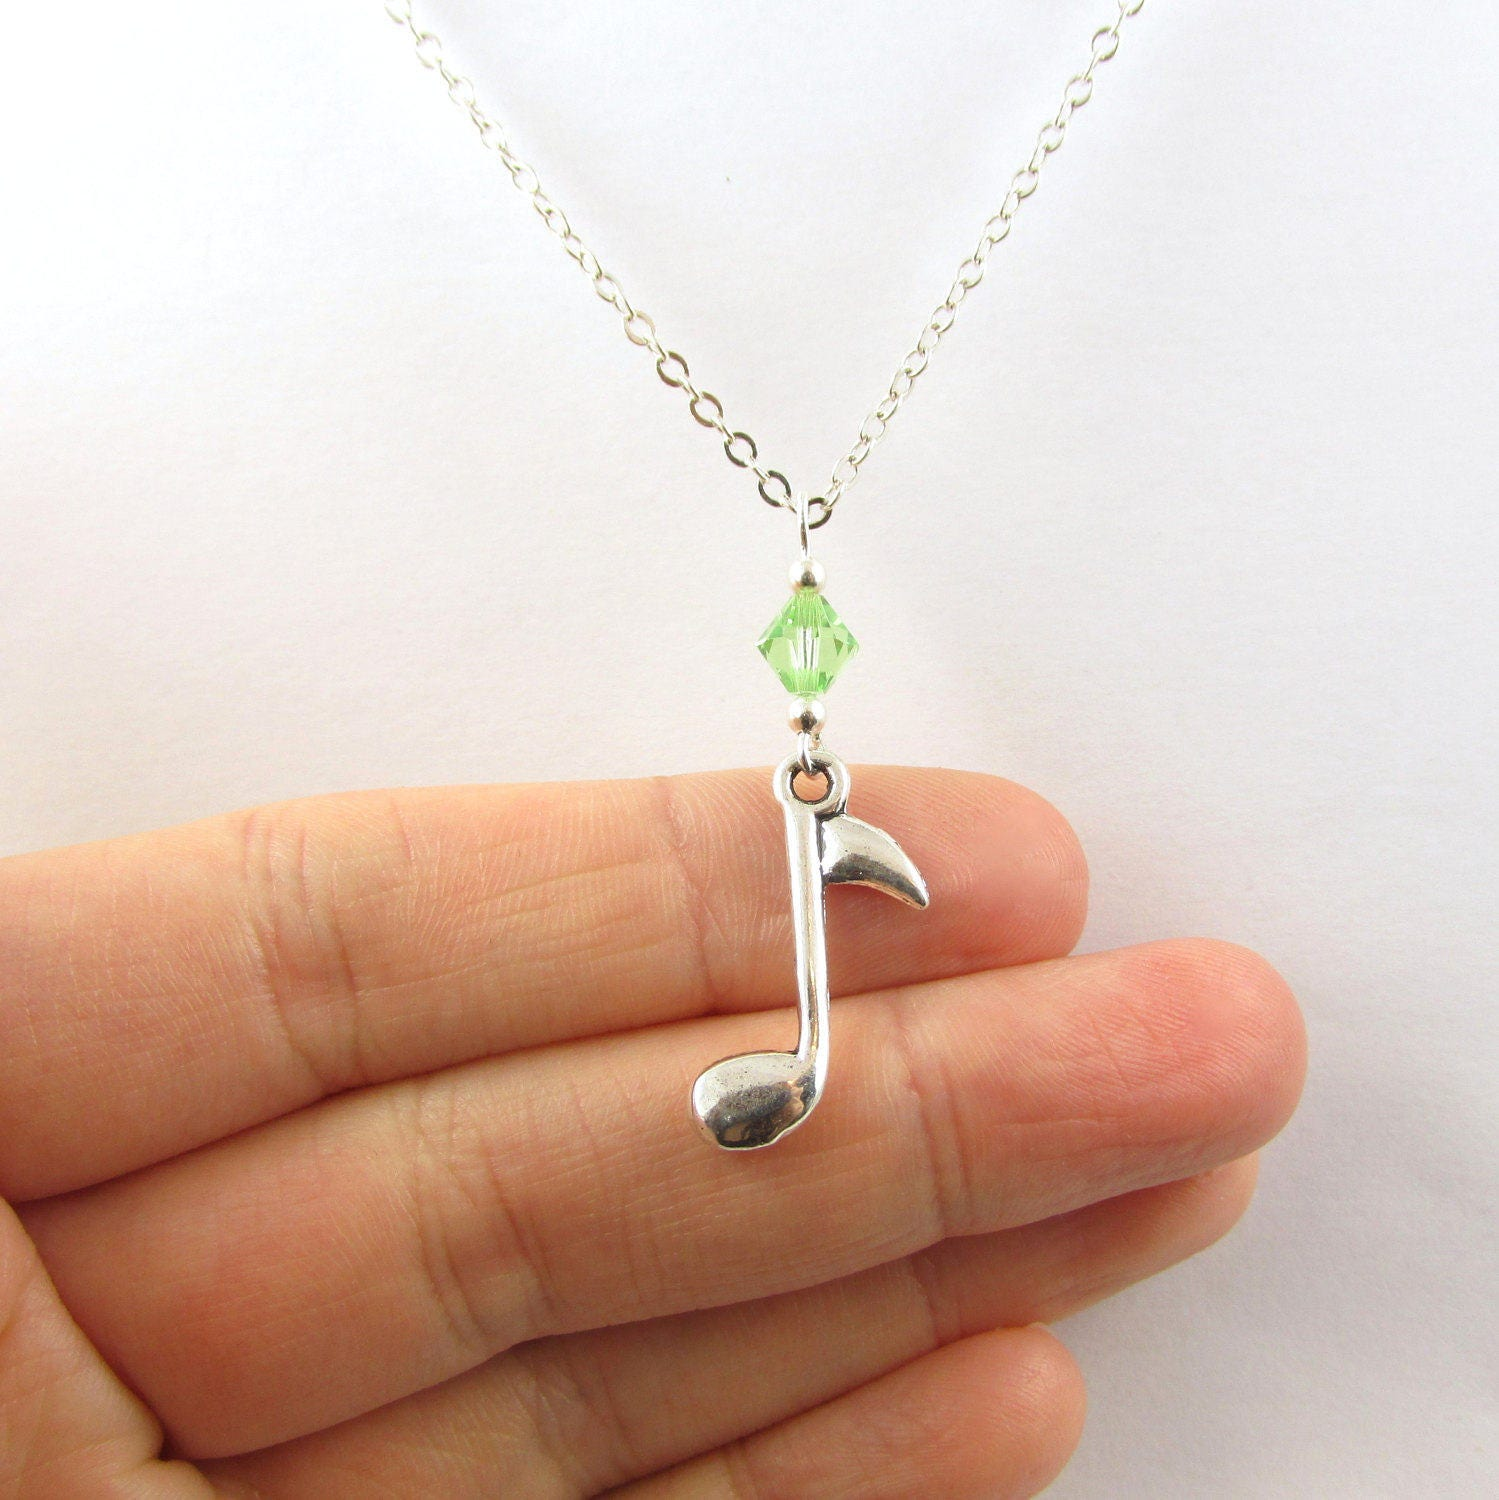 jewellery engraved when tone fail chain uk dp pick words amazon with necklace inch speaks silver pendant guitar co music